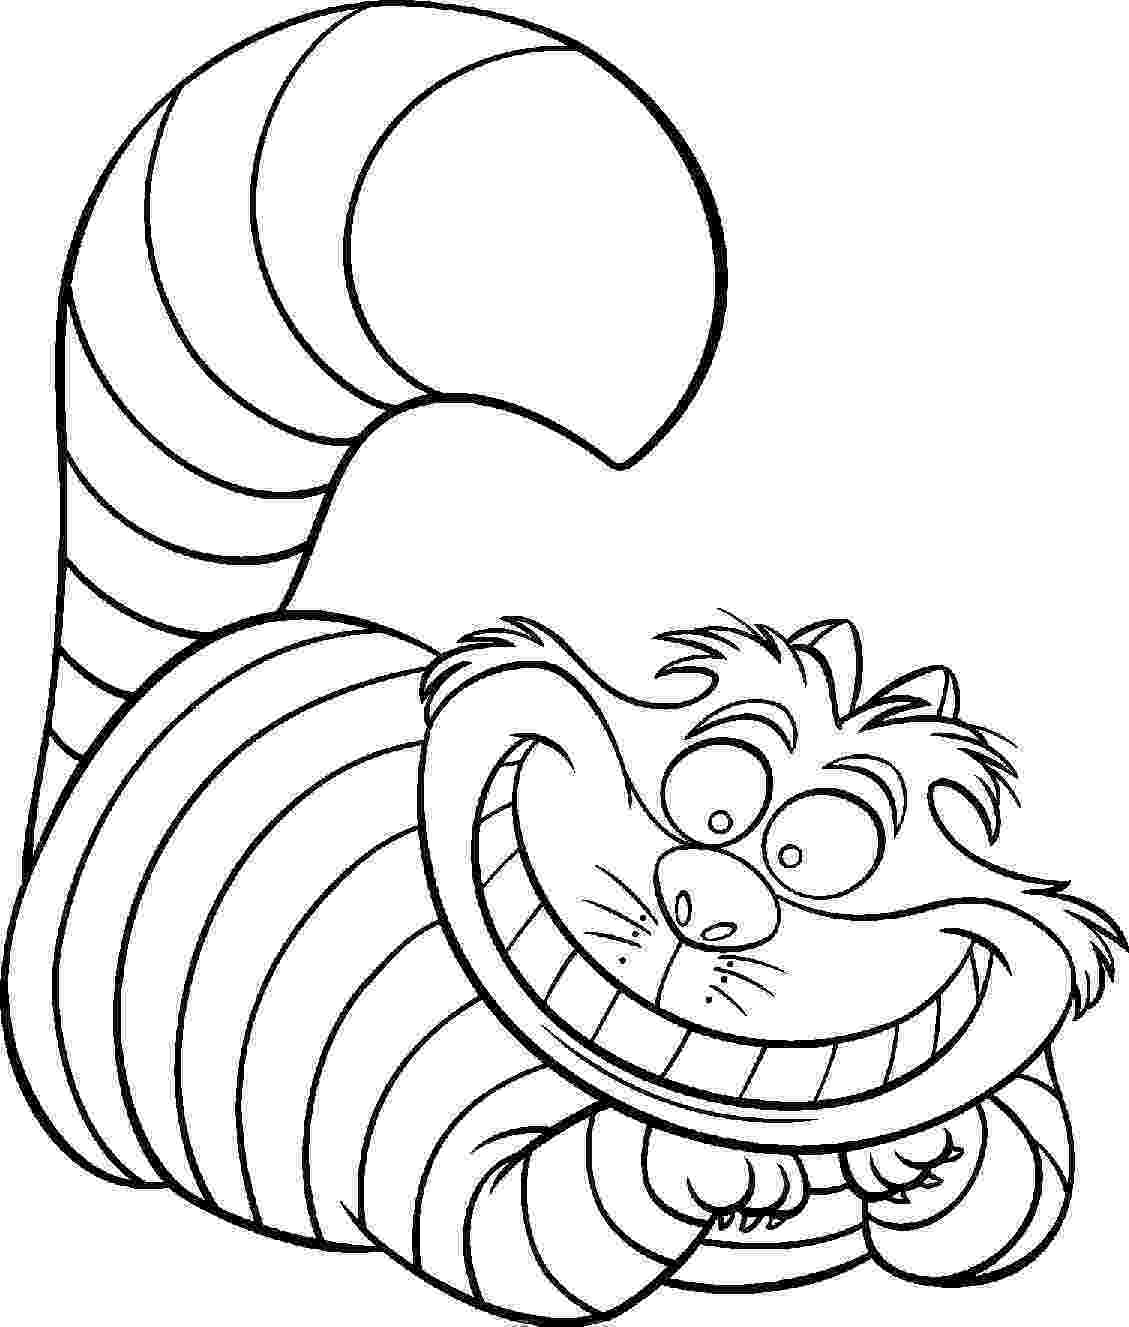 disney coloring disney coloring pages best coloring pages for kids disney coloring